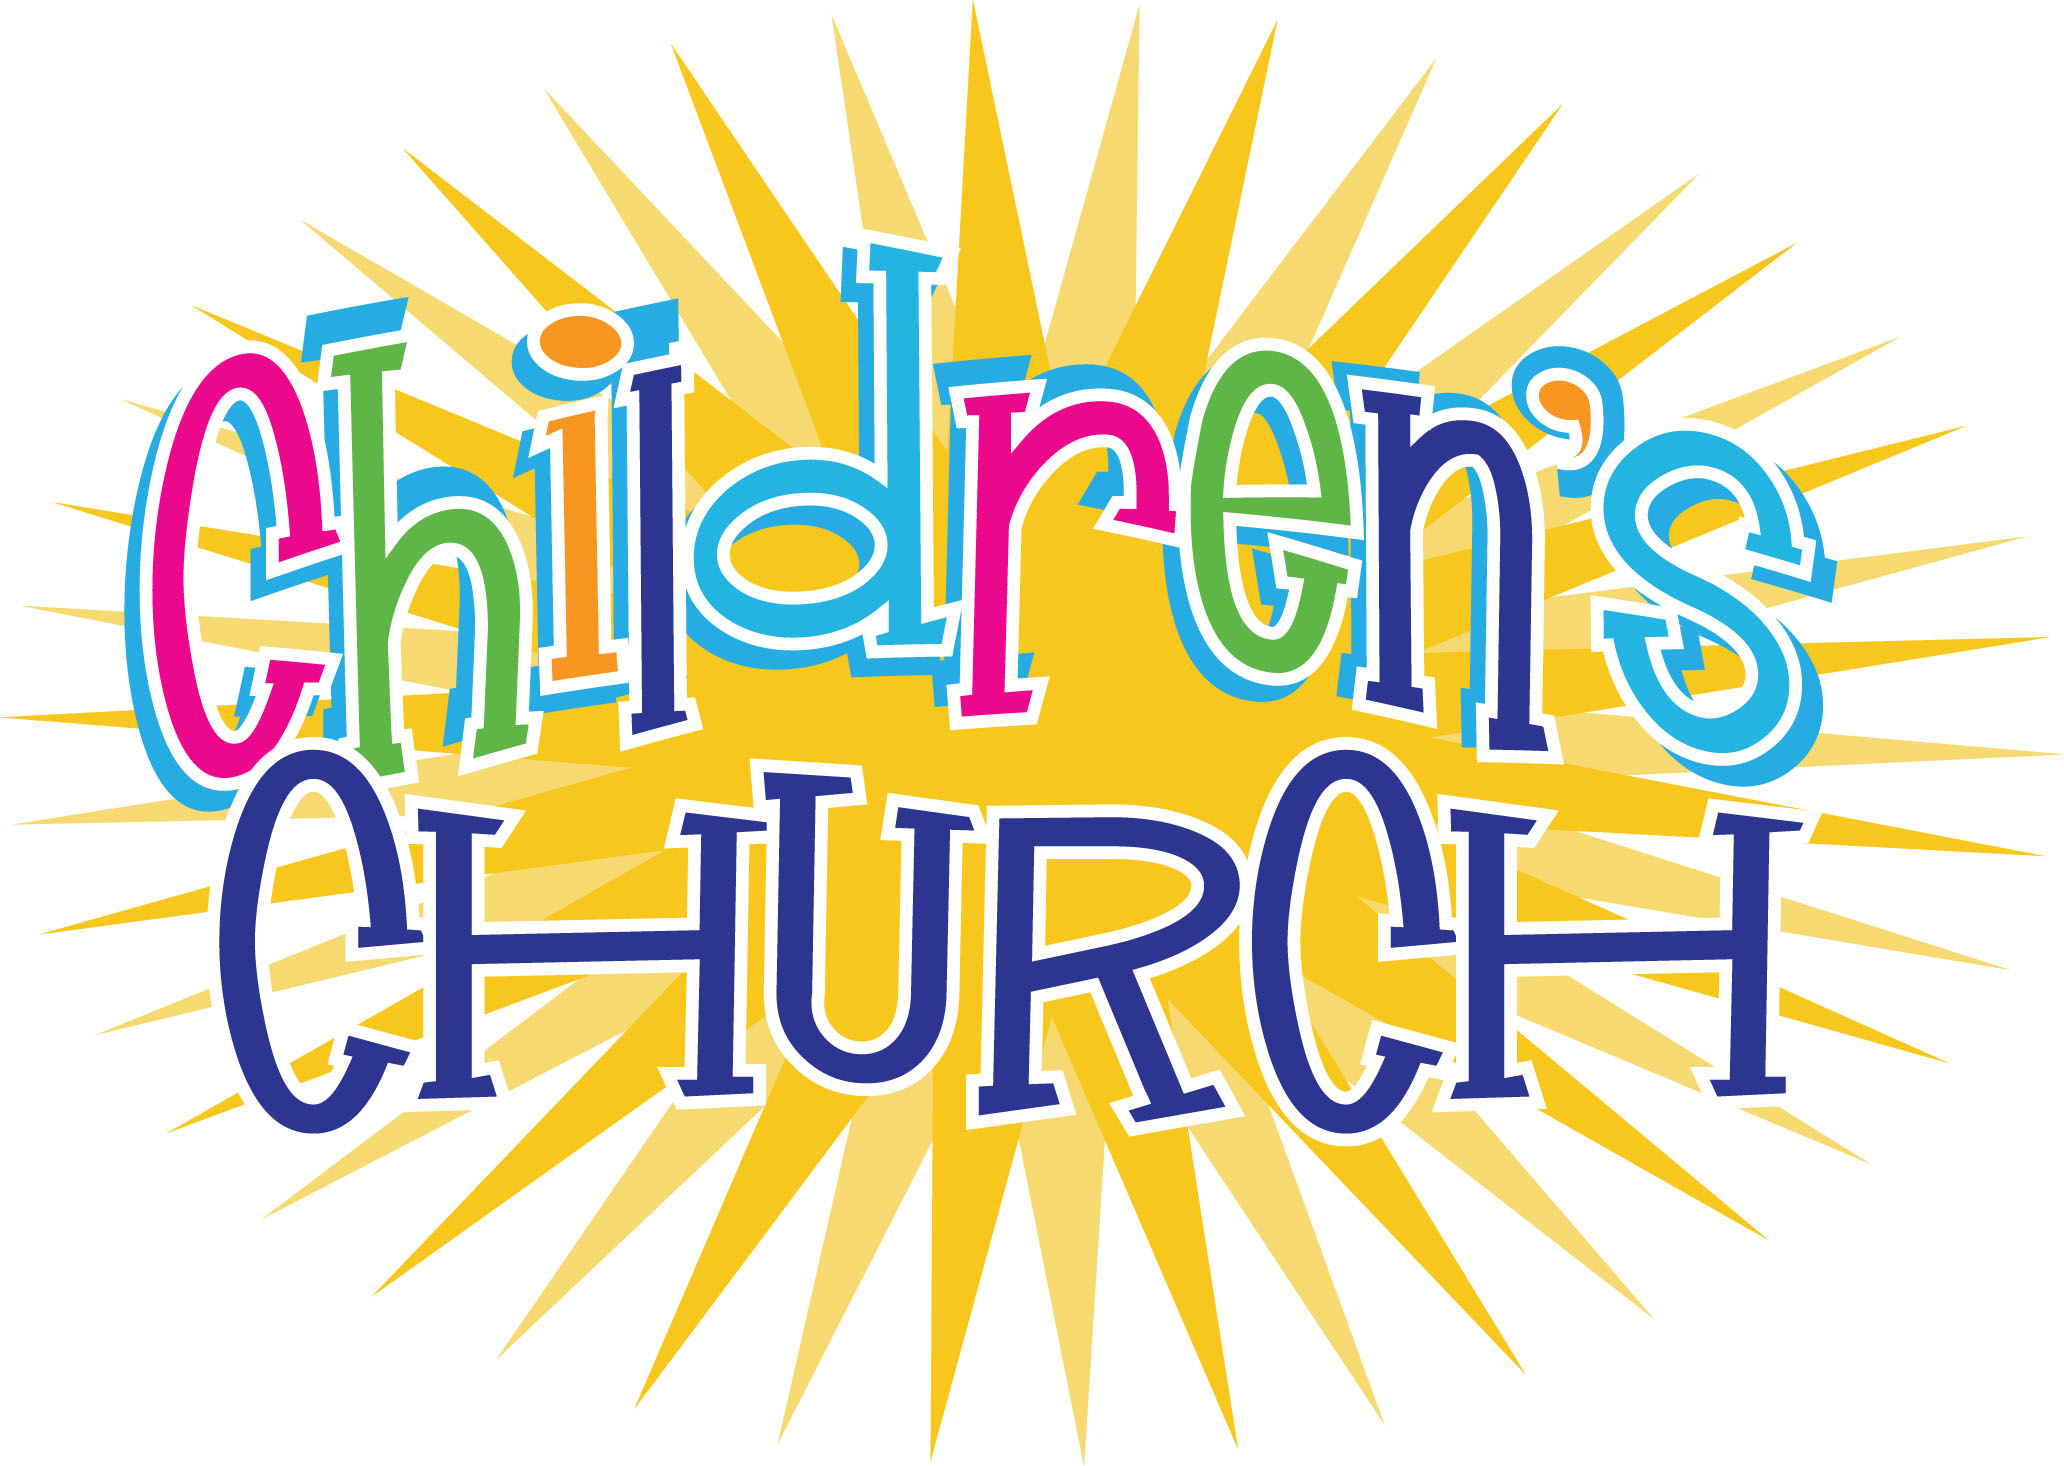 Kids church clip art. Schedule clipart children's